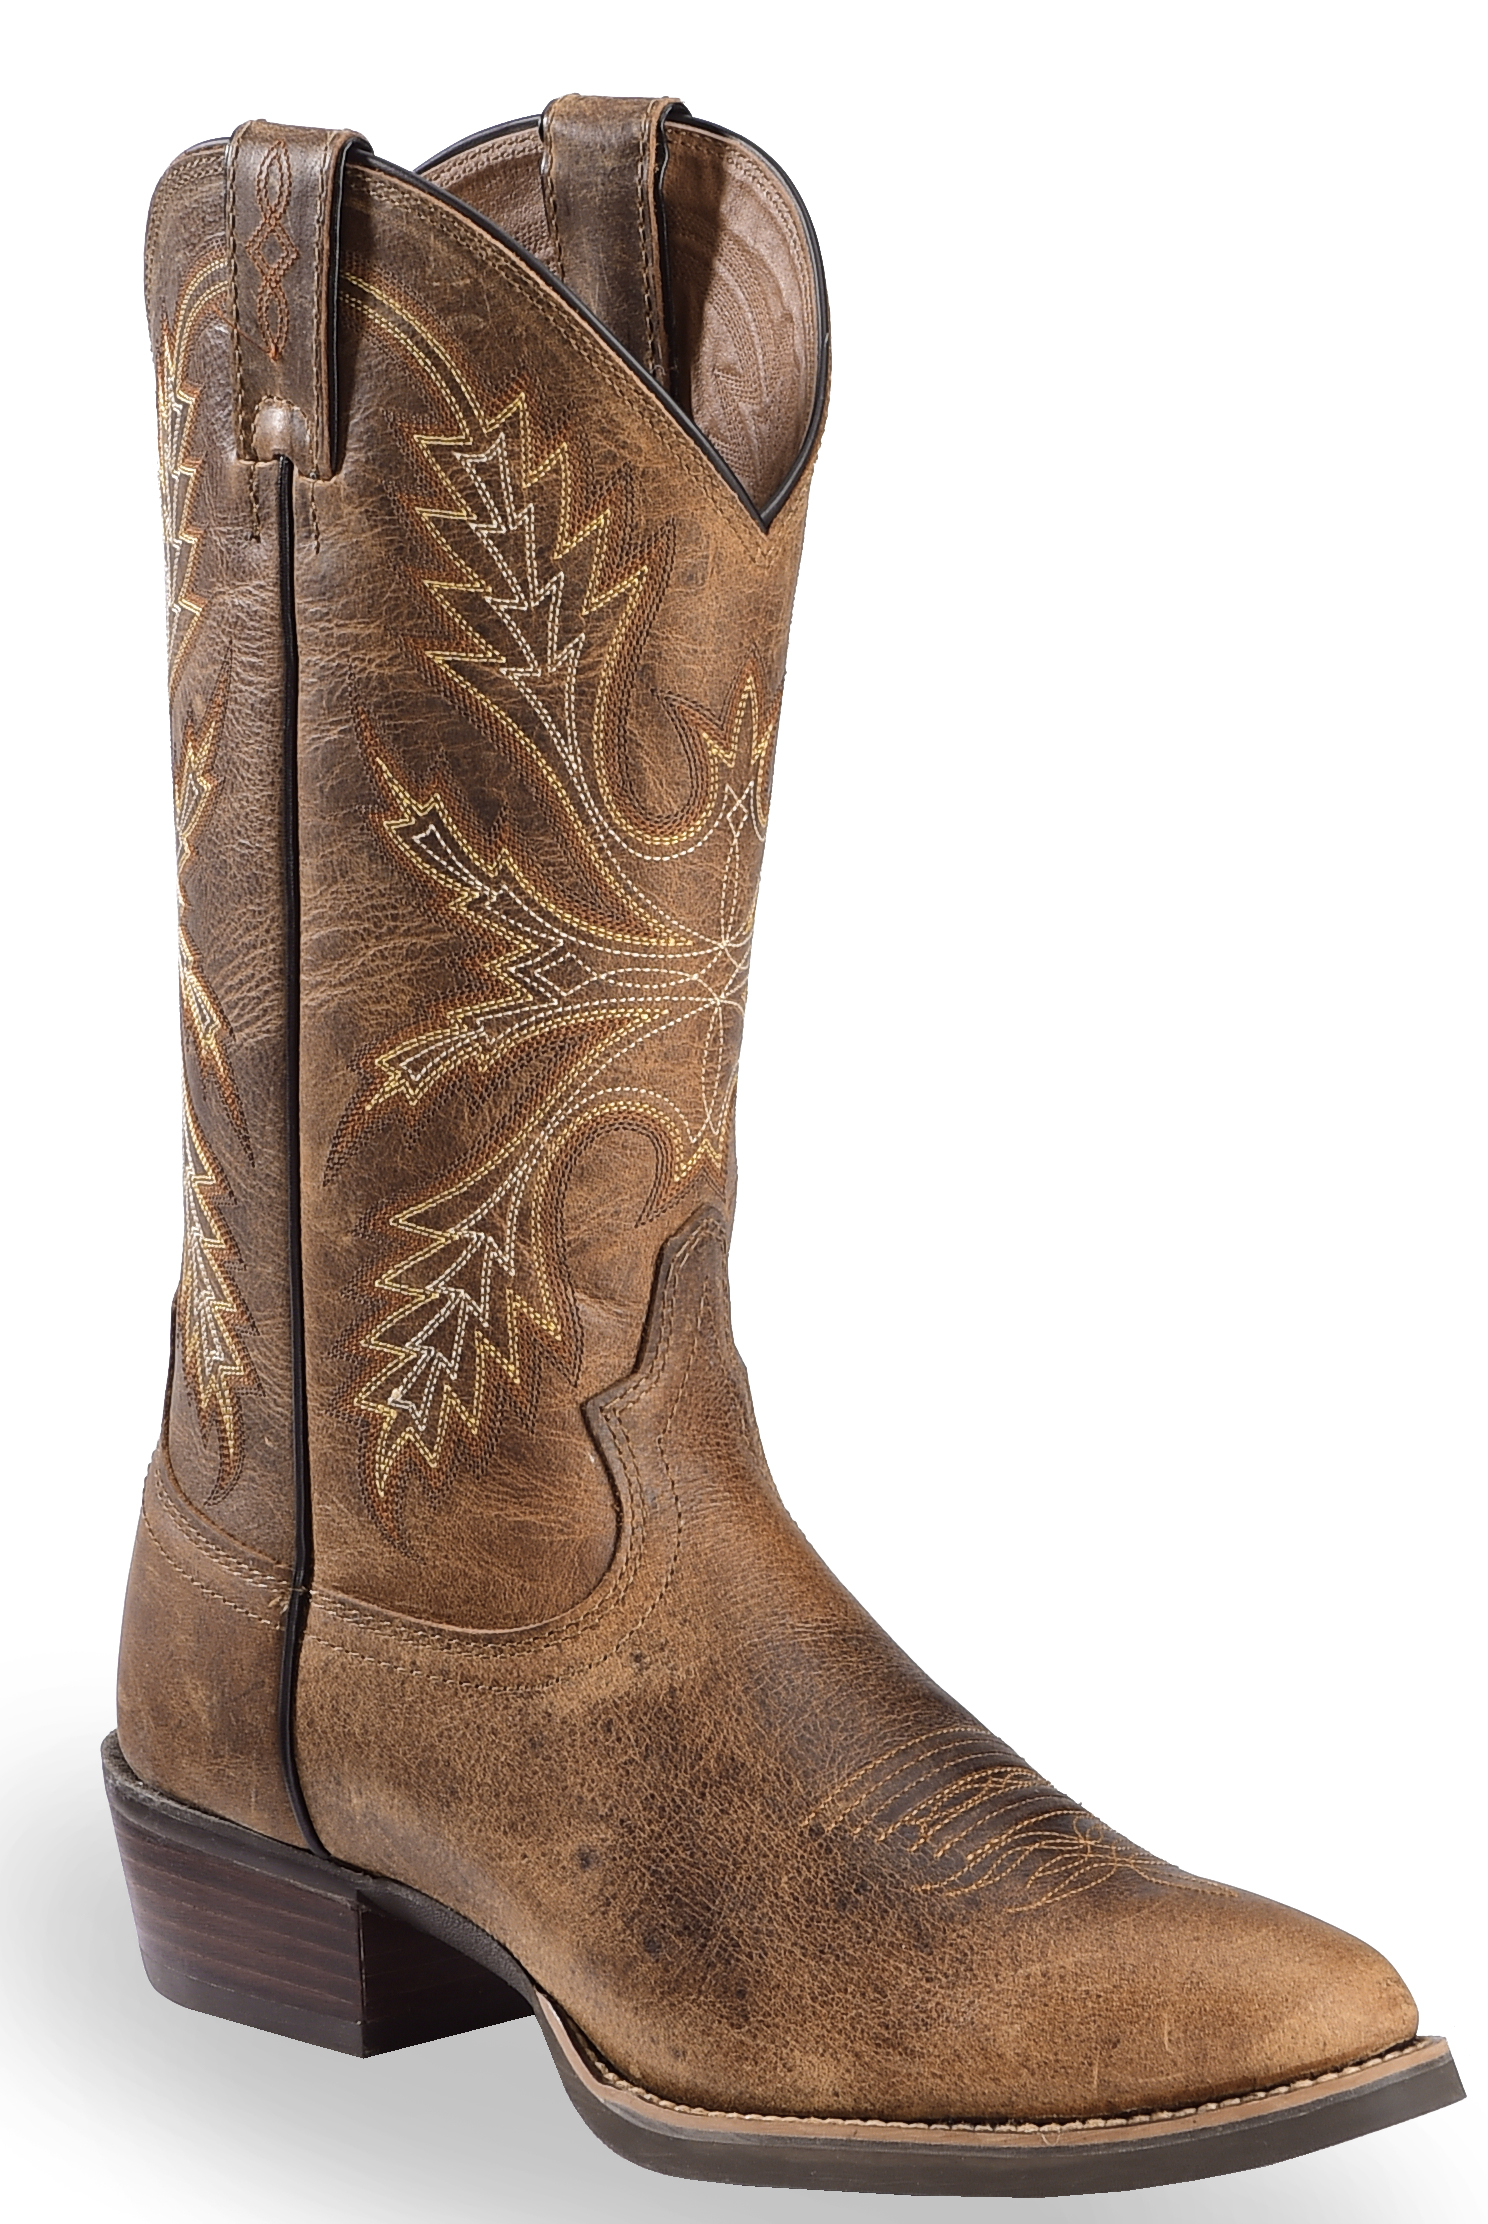 Men's Round Toe Boots - Country Outfitter